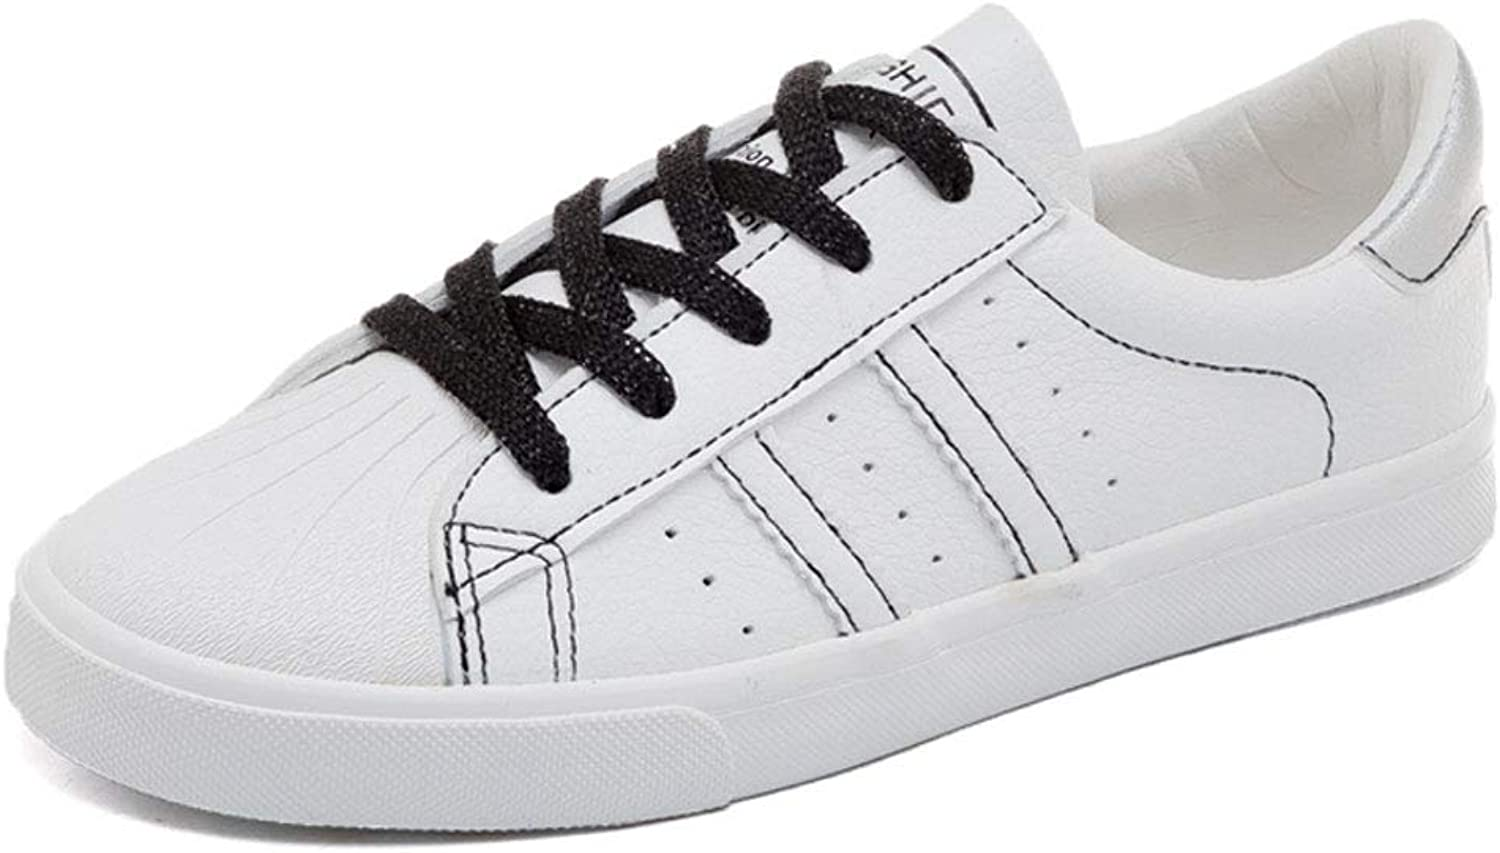 Women's White Low Top Sneakers Fashion Lace-up shoes Breathable PU Leather Casual shoes